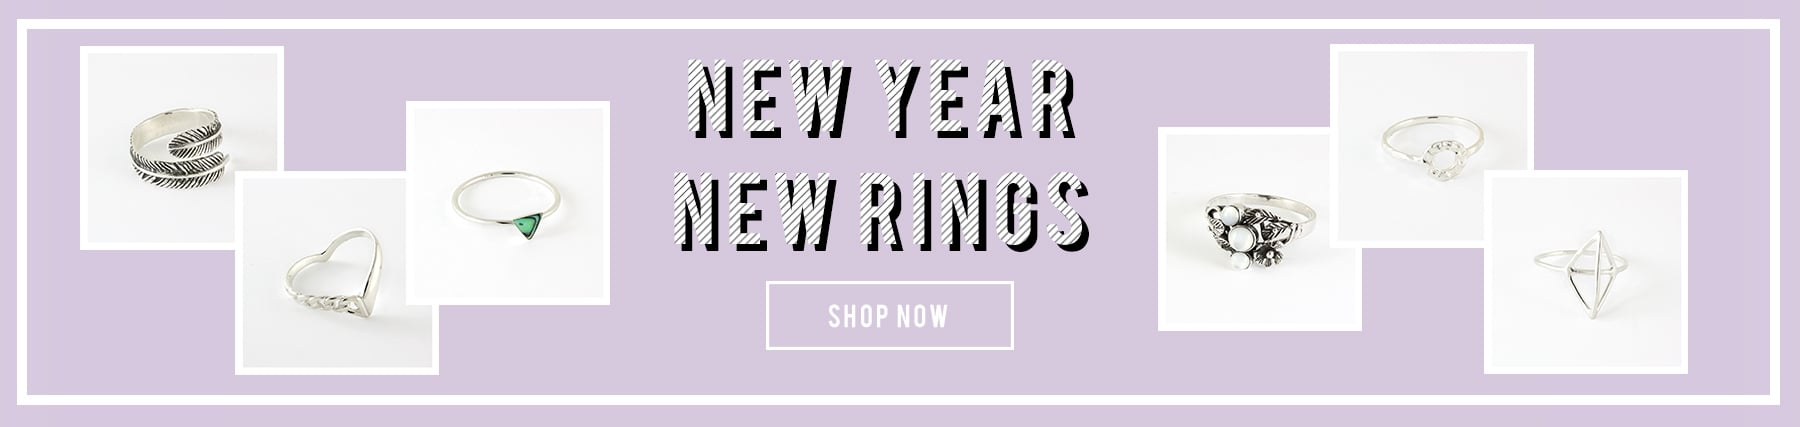 New Year New Rings